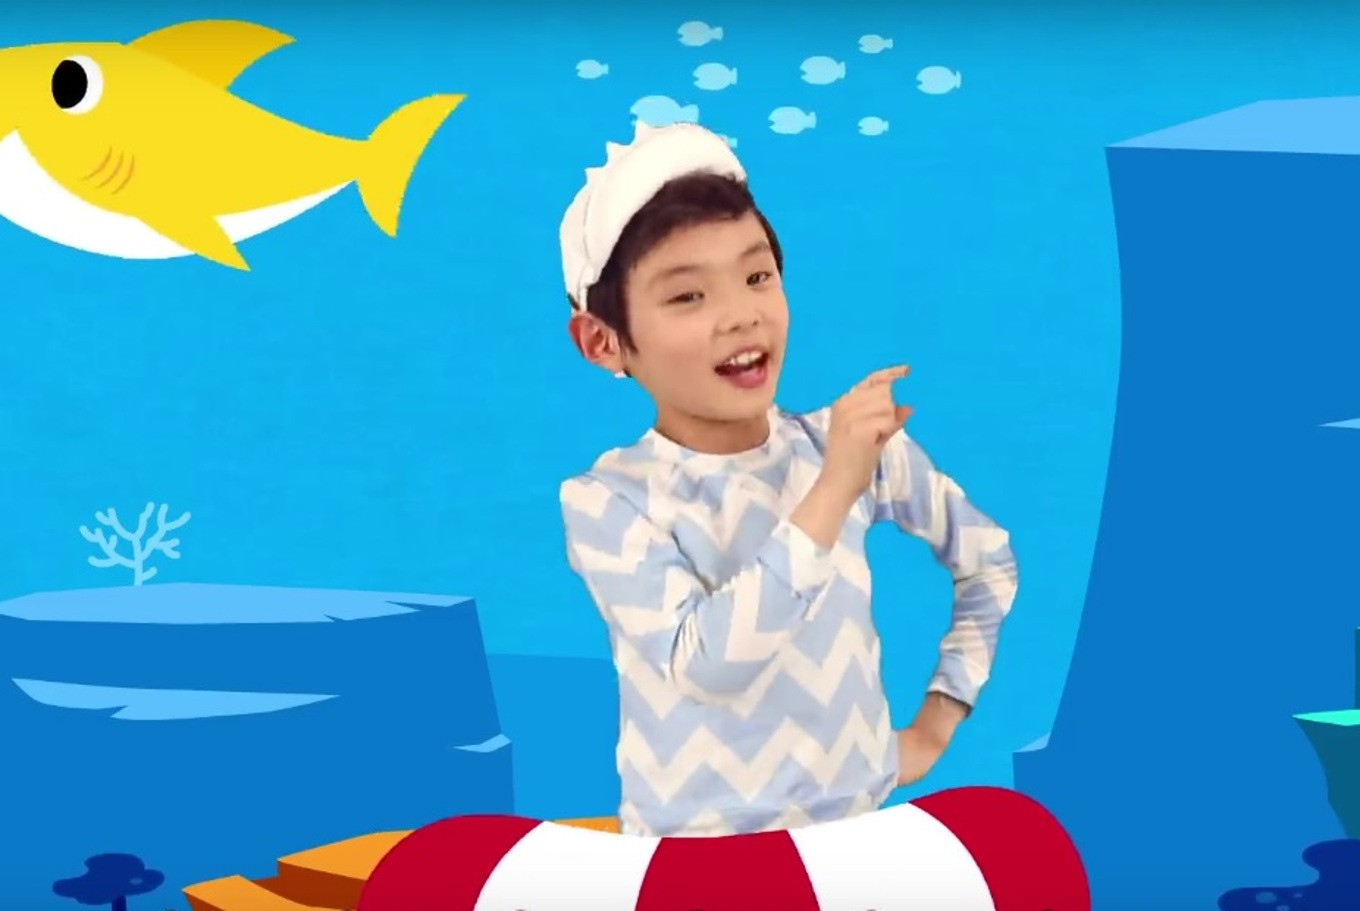 Addictive 'Baby Shark' child song recognized with RIAA's diamond status